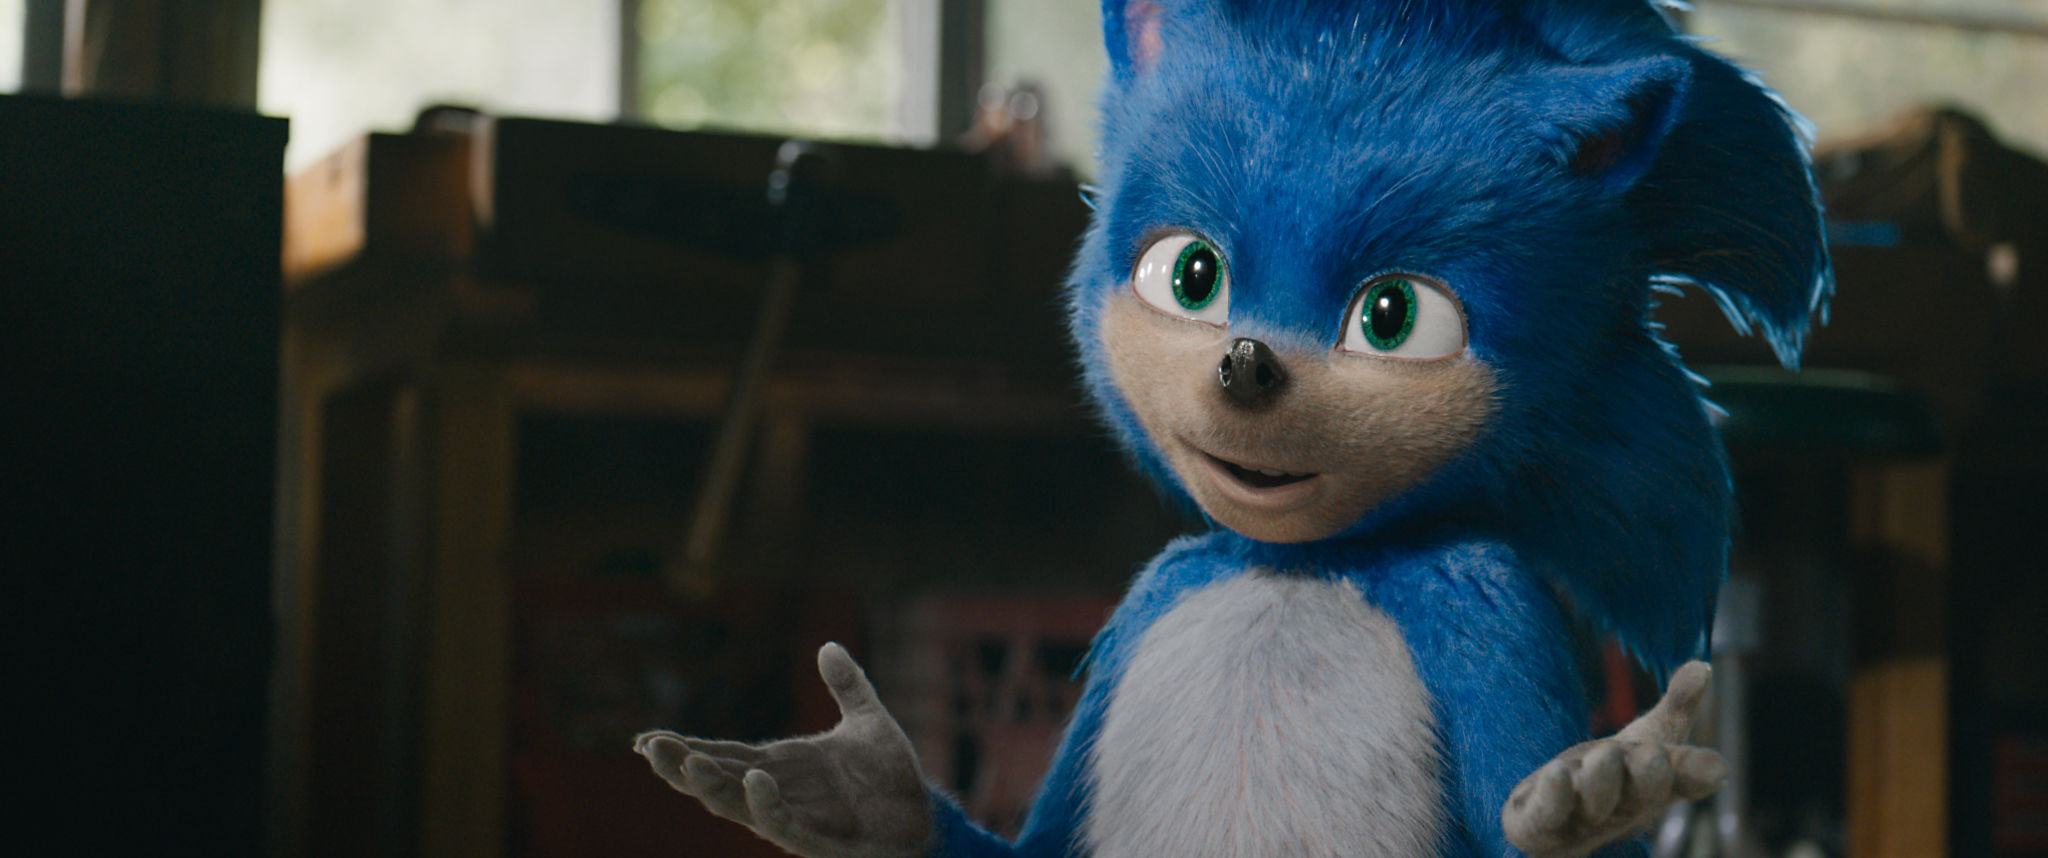 That Horrible Original Sonic The Hedgehog Design Is Haunting Children S Toys